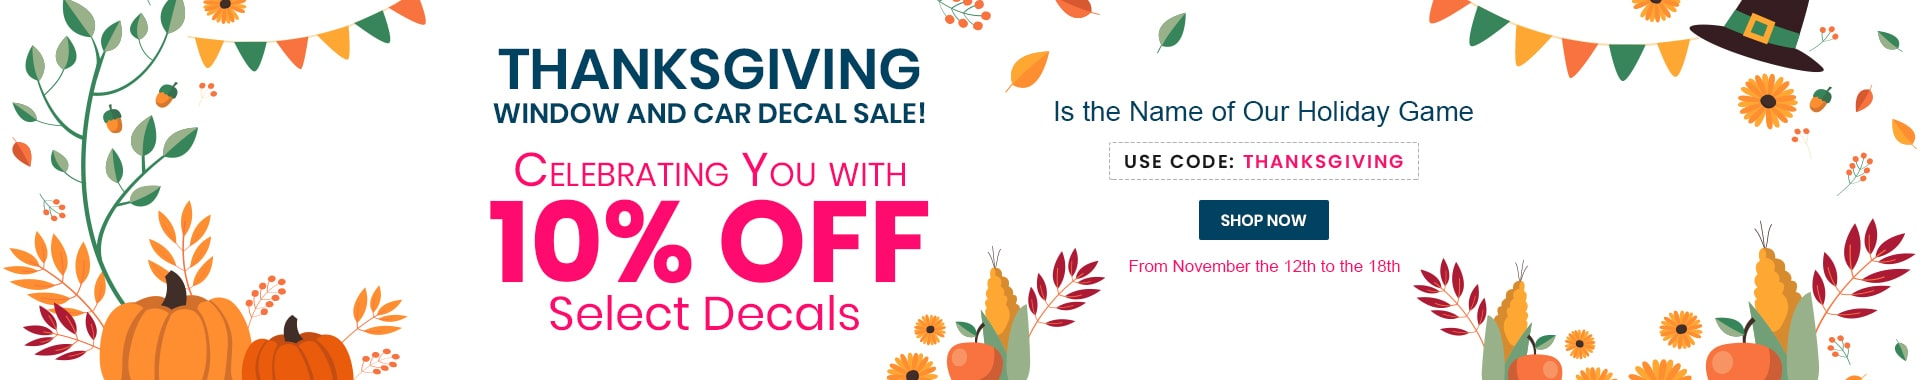 Celebrating You with 10% Off Select Decals